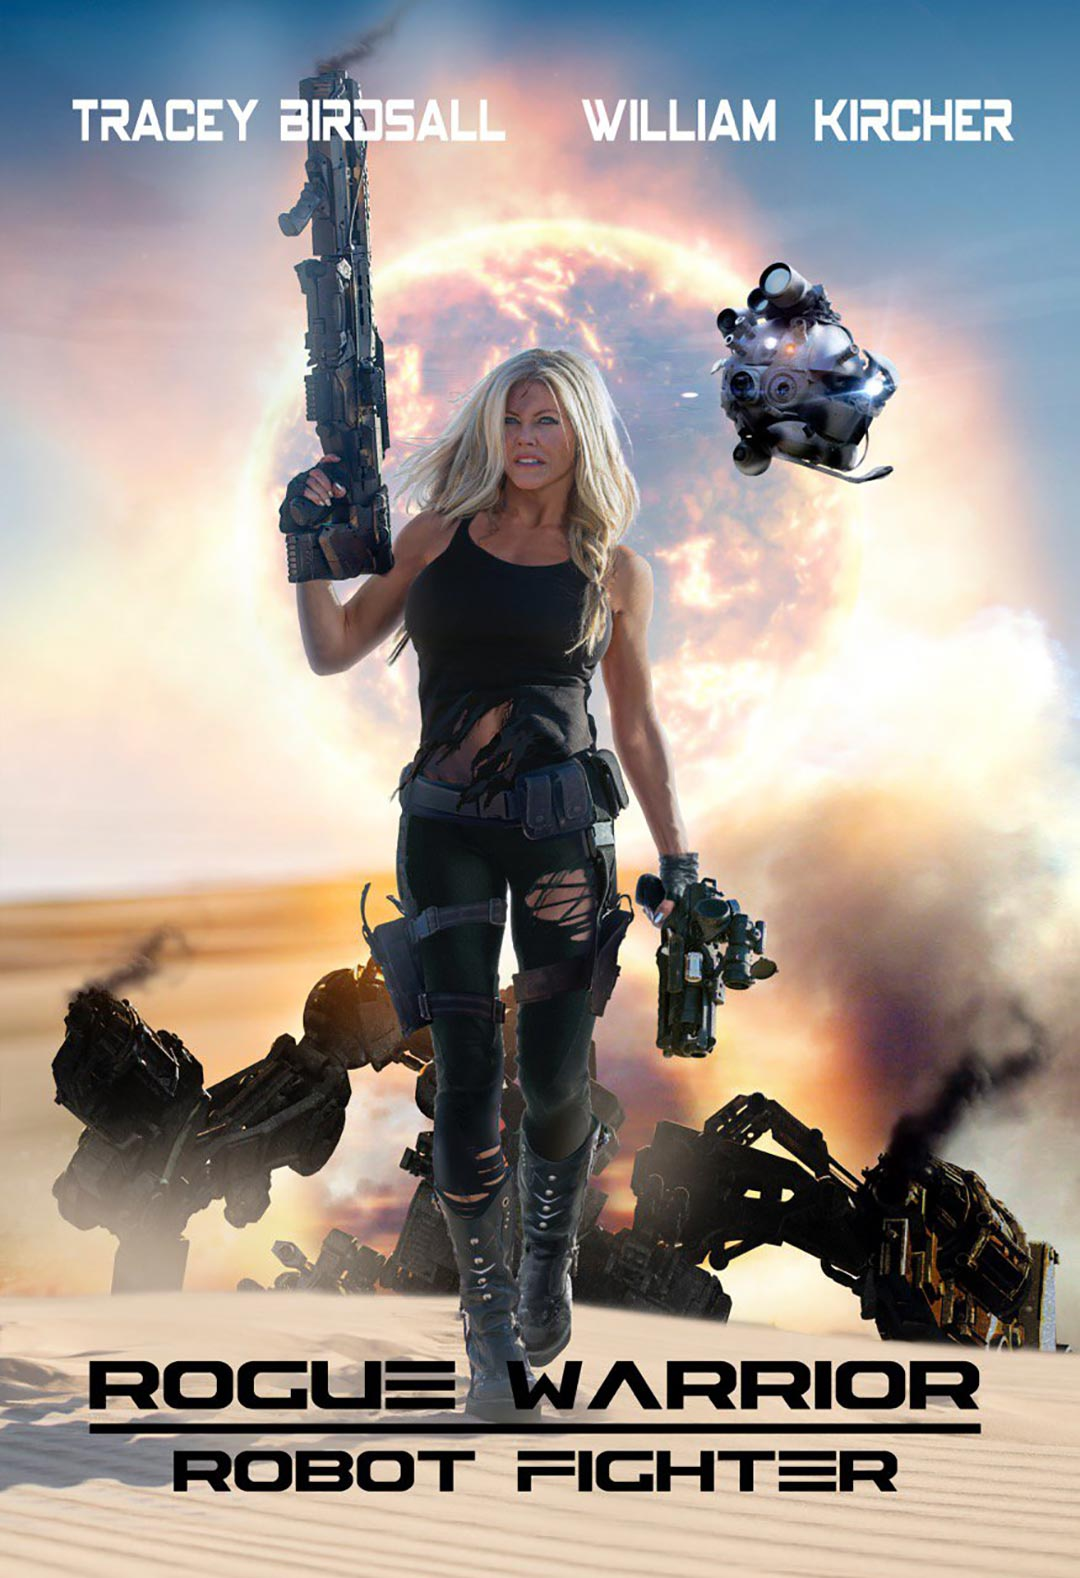 Indie Sci-Fi Film Starring Tracey Birdsall in the Oscars Race